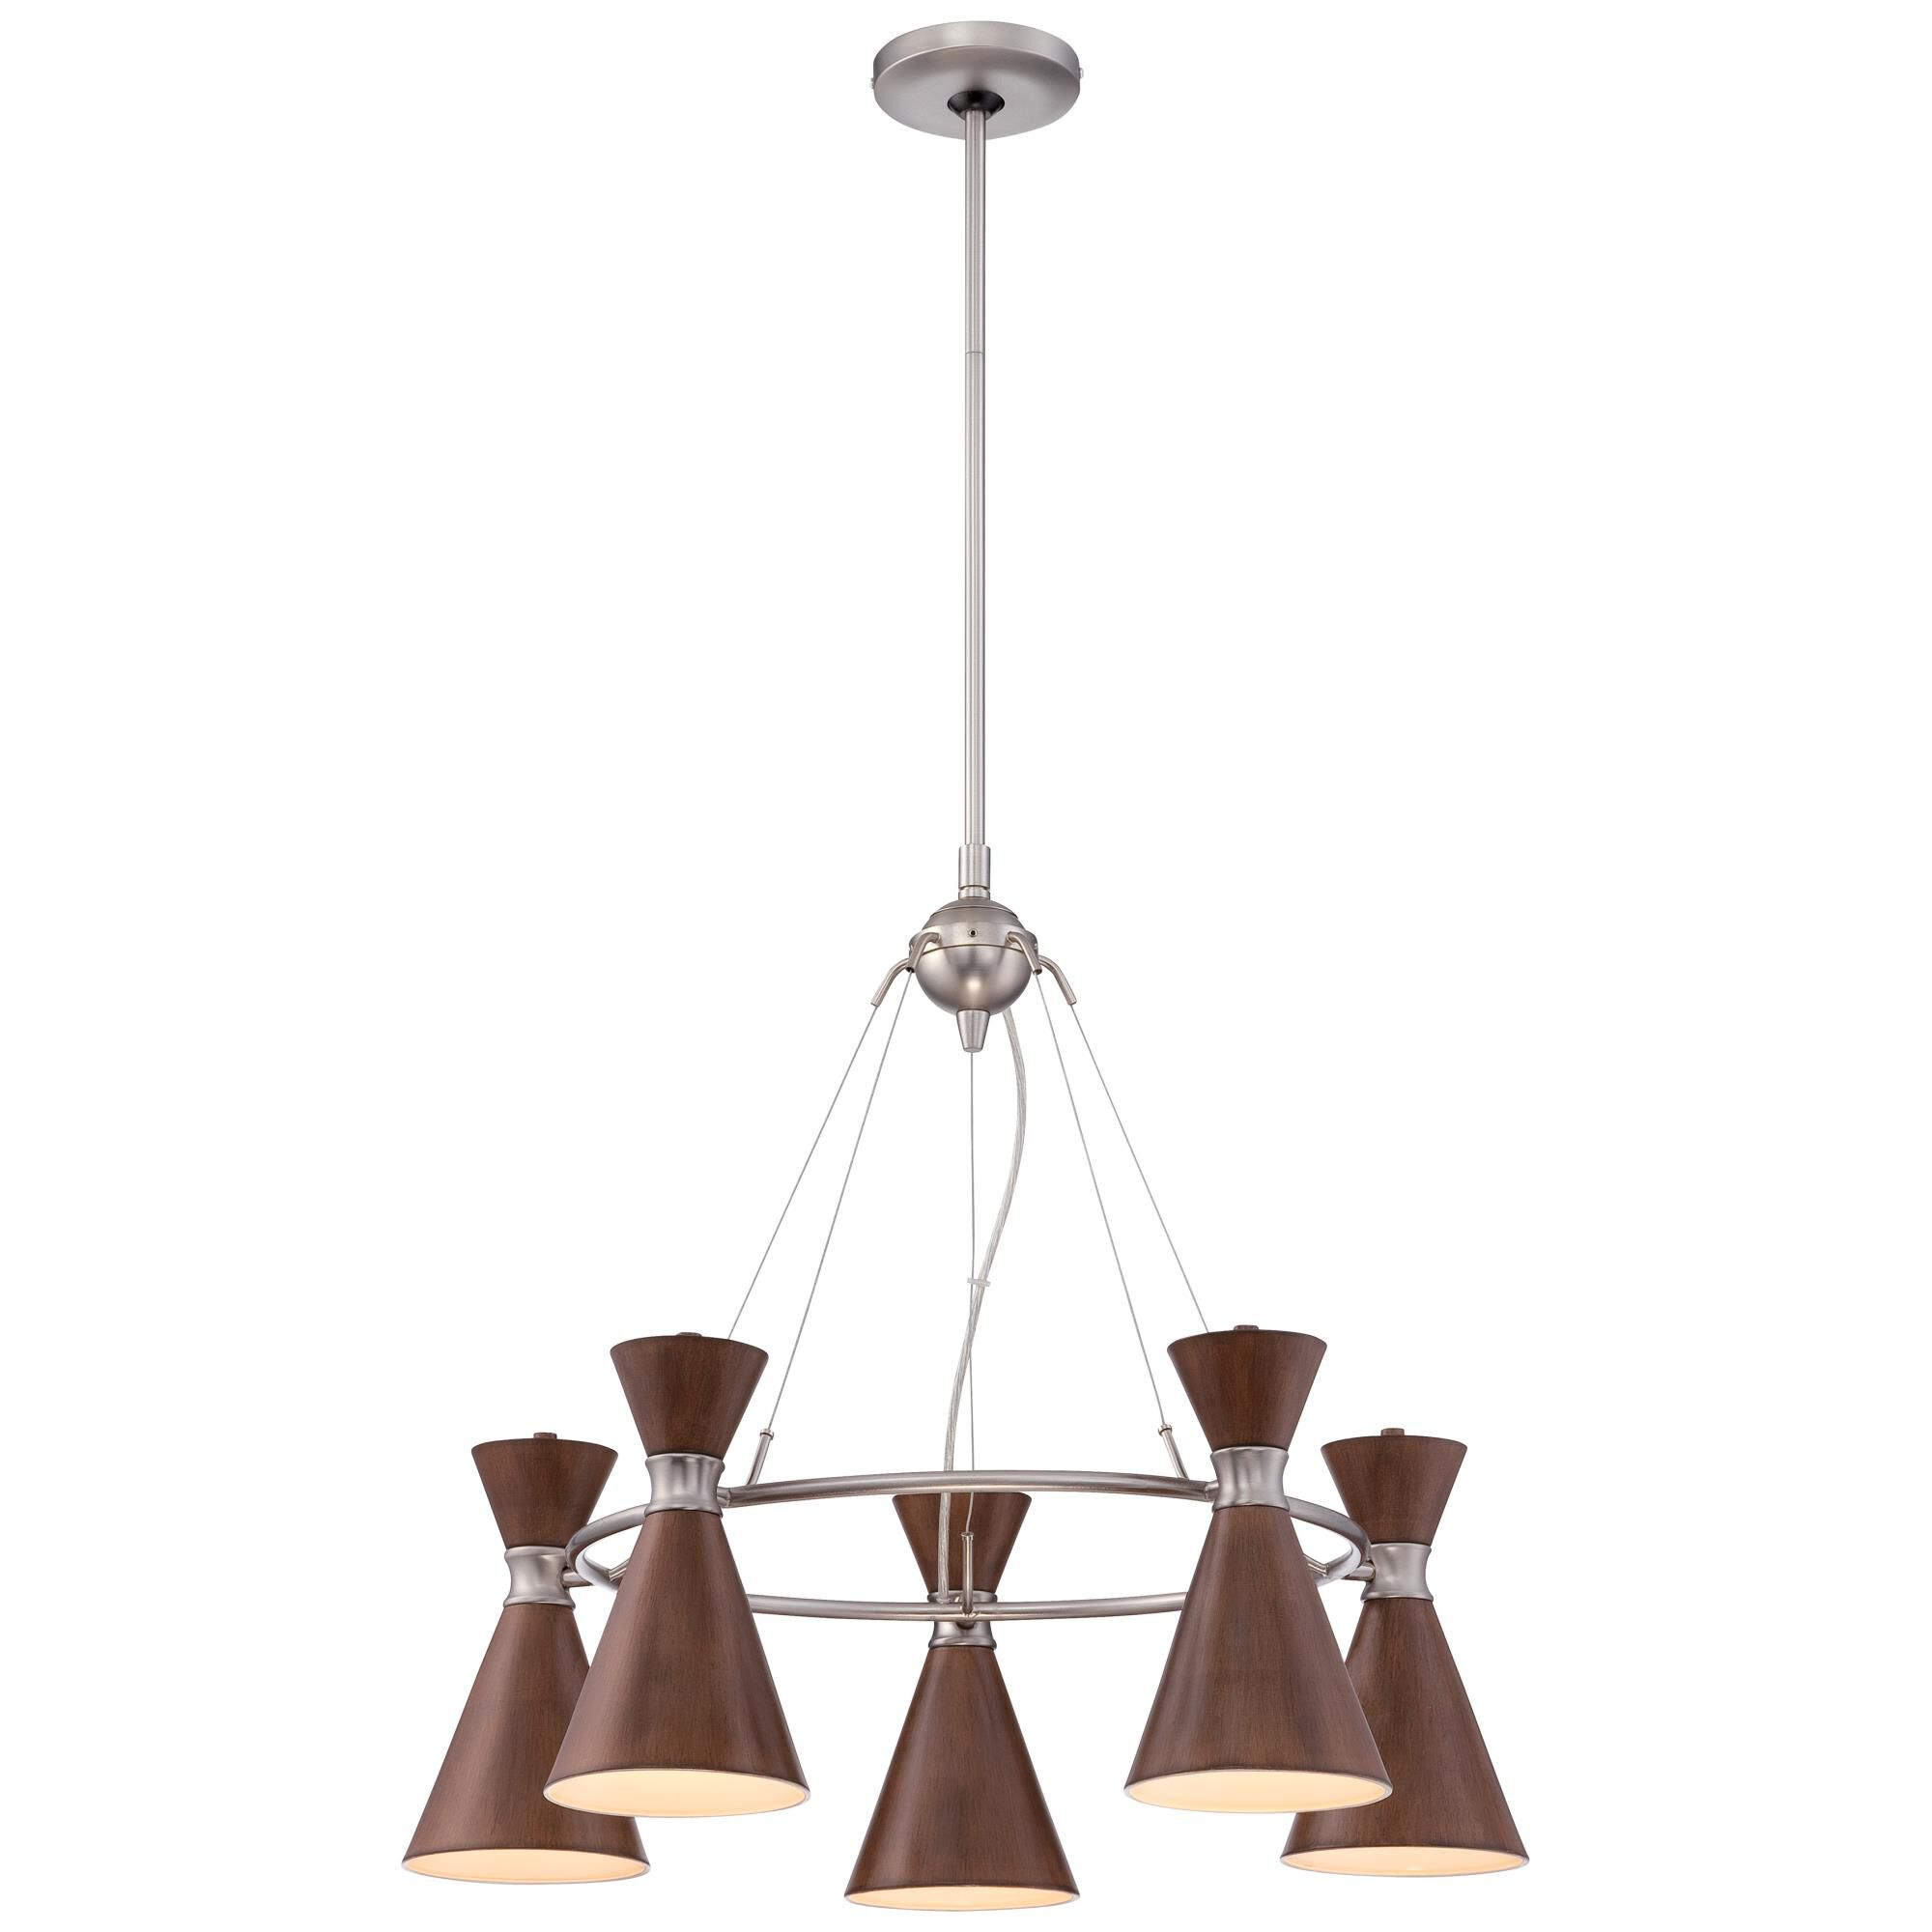 Kovacs Conic 26 Inch 5 Light Chandelier Conic - P1825-651 - Transitional